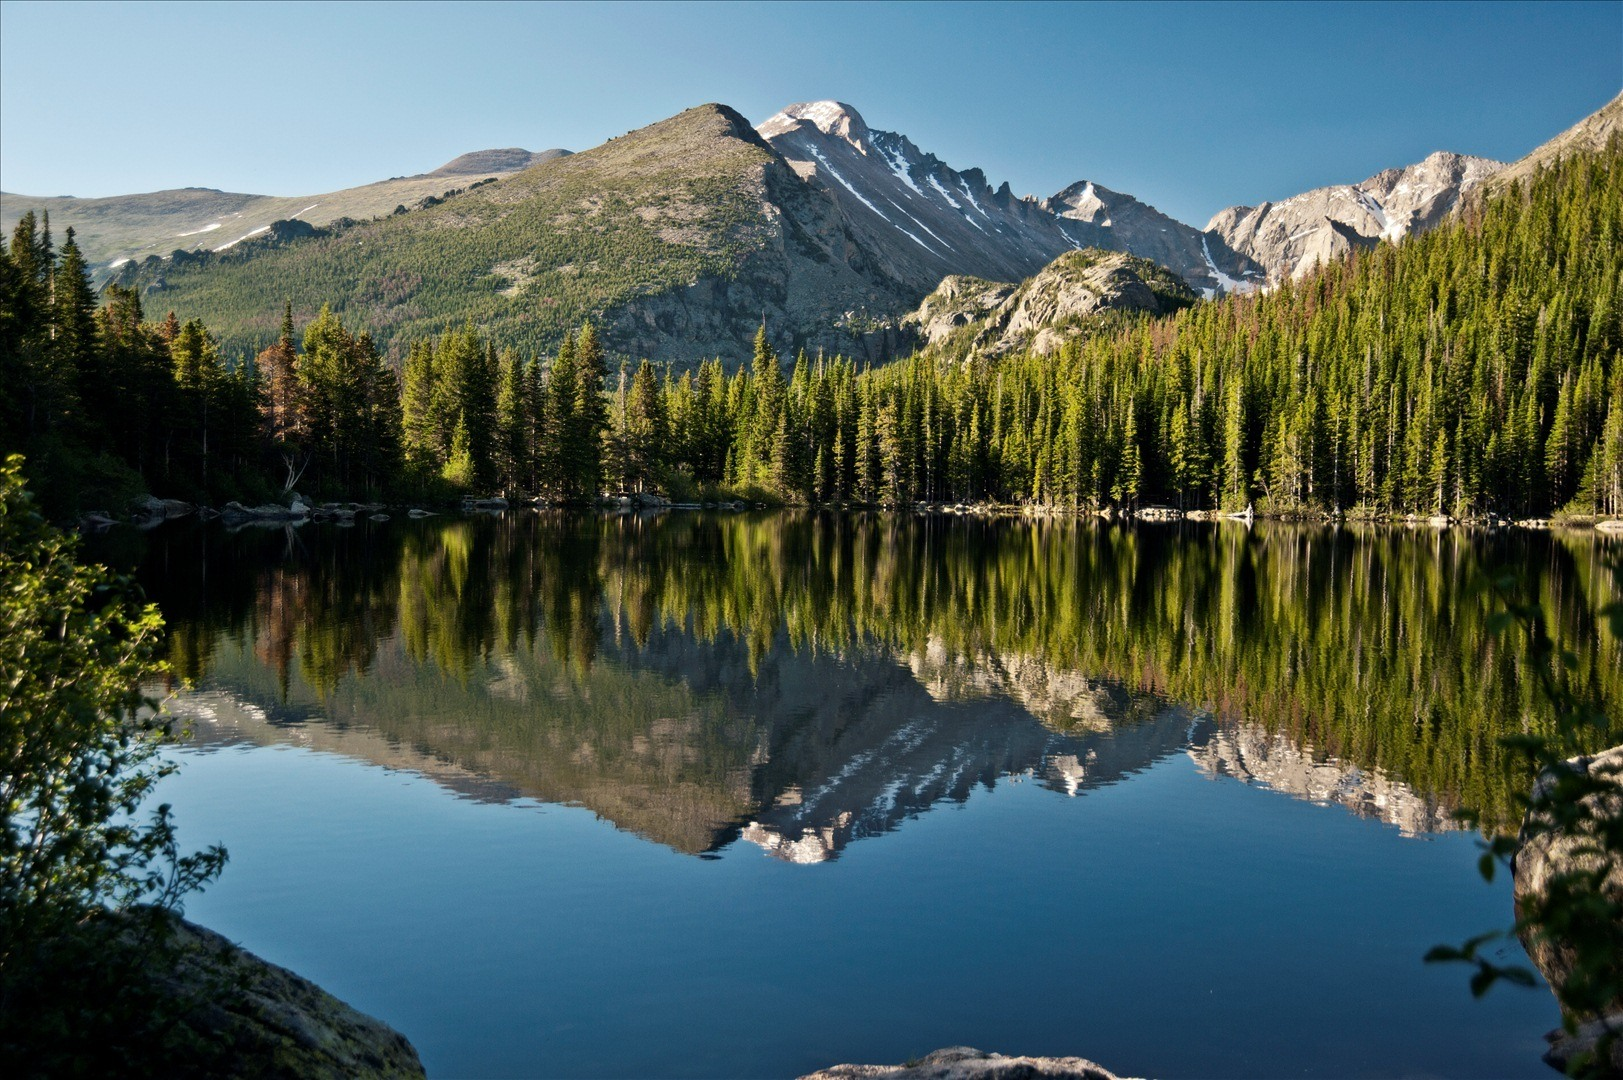 rocky mountains with lake